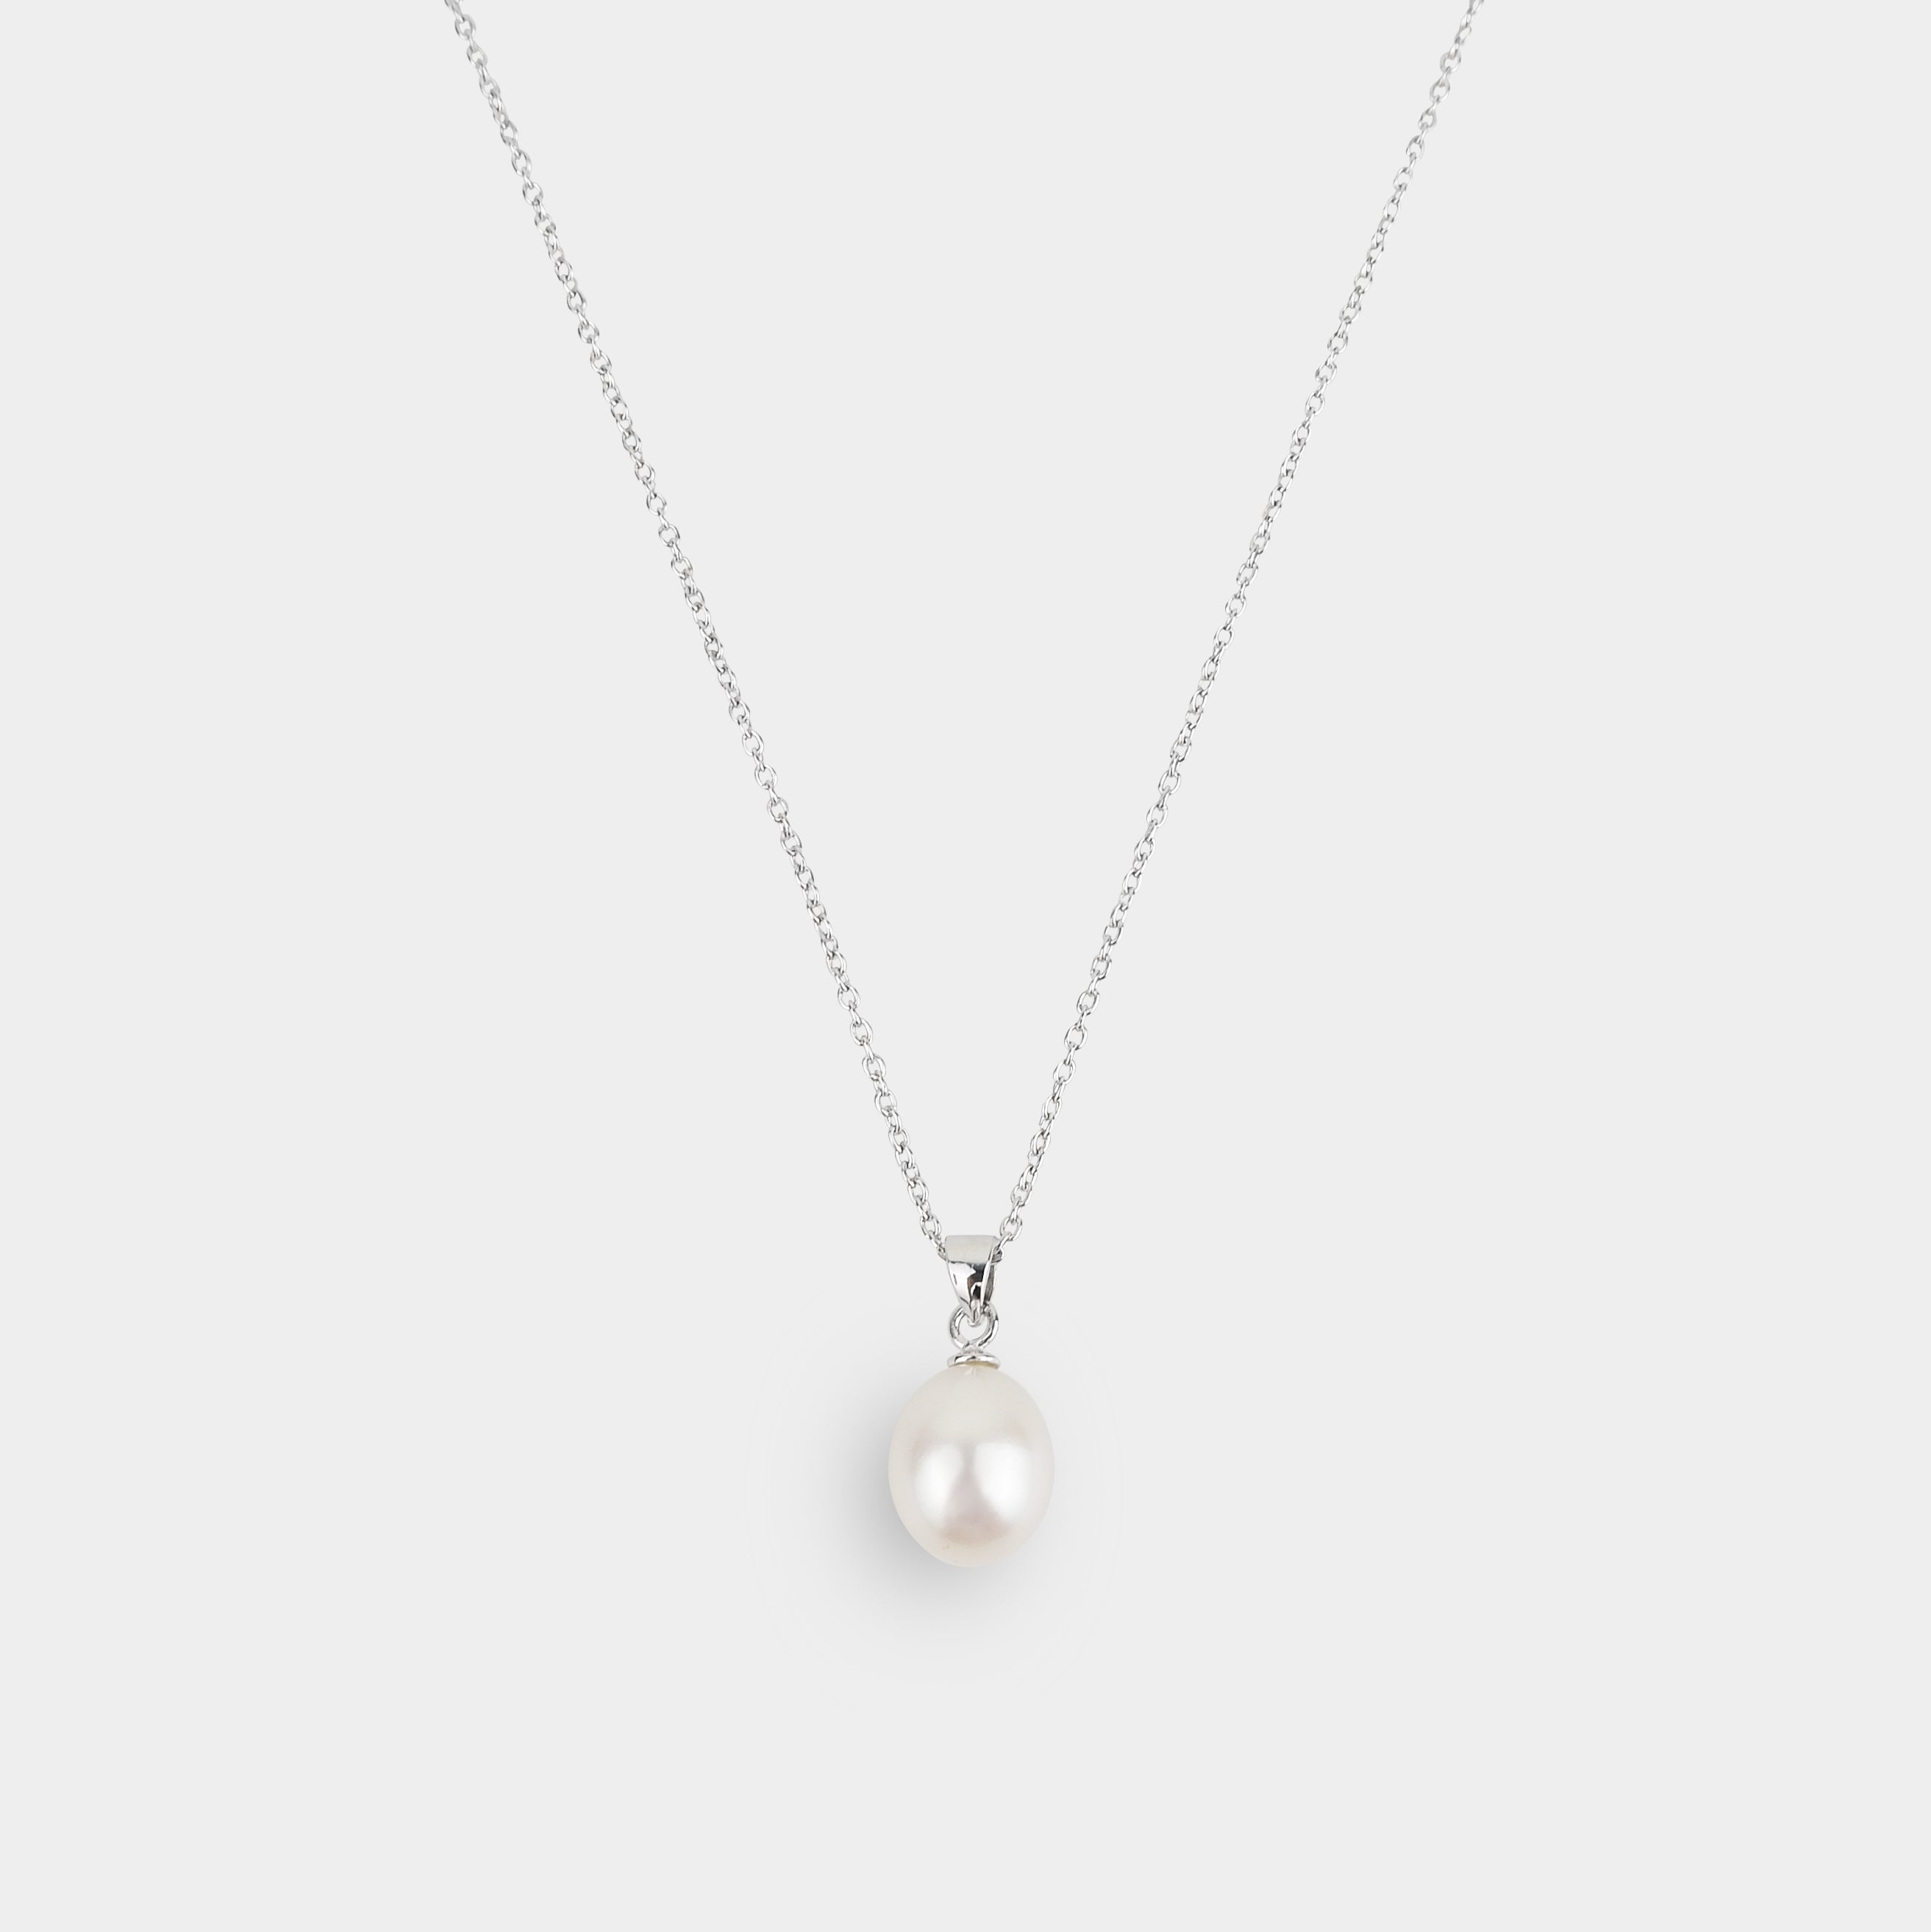 DROP PEARL ON SILVER PENDANT